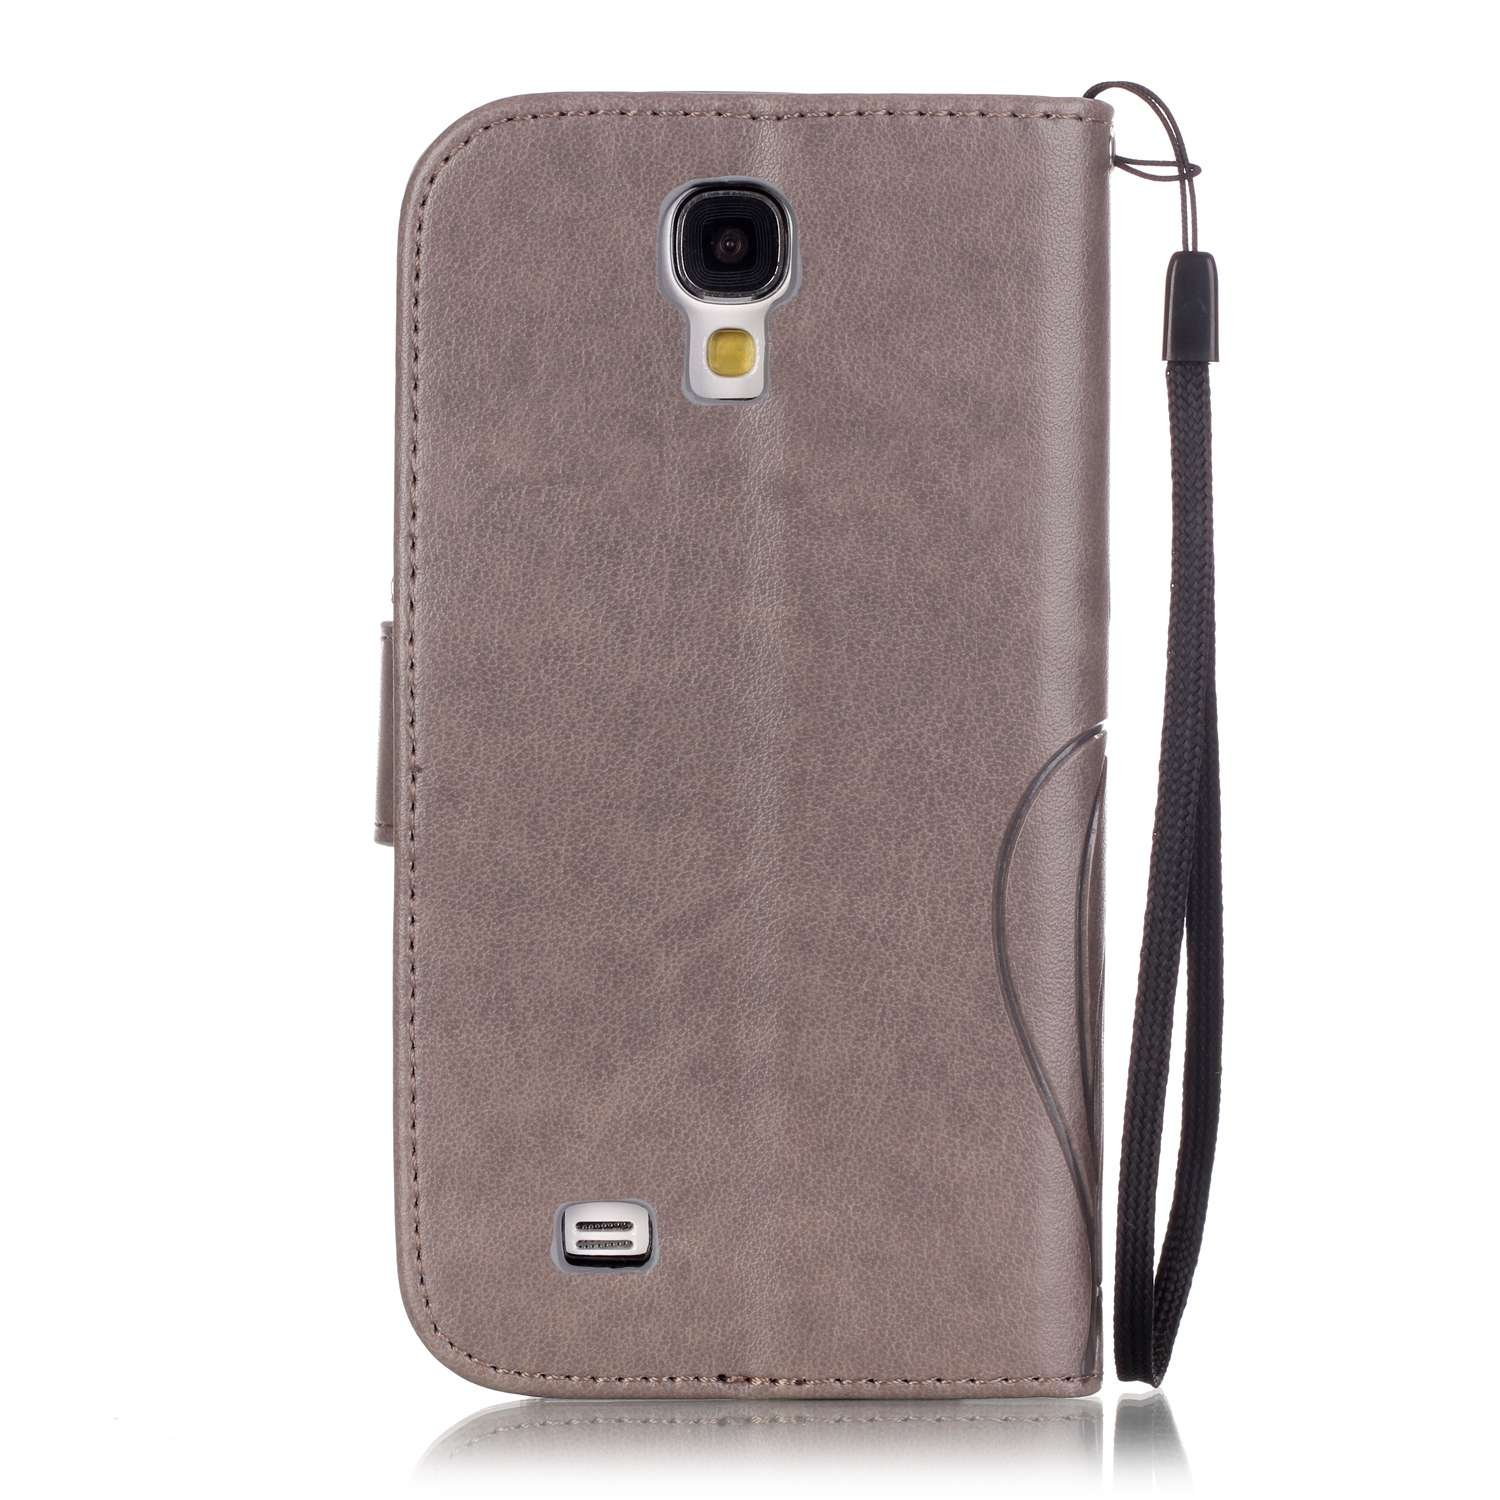 Galaxy S4 Mini Case,Galaxy S4 Mini Cover,ikasus Embossing Flower Vines Butterflies PU Leather Flip Fold Wallet Pouch Wallet Flip Stand Credit Card ID Holders Case Cover for Galaxy S4 Mini i9190,Gray